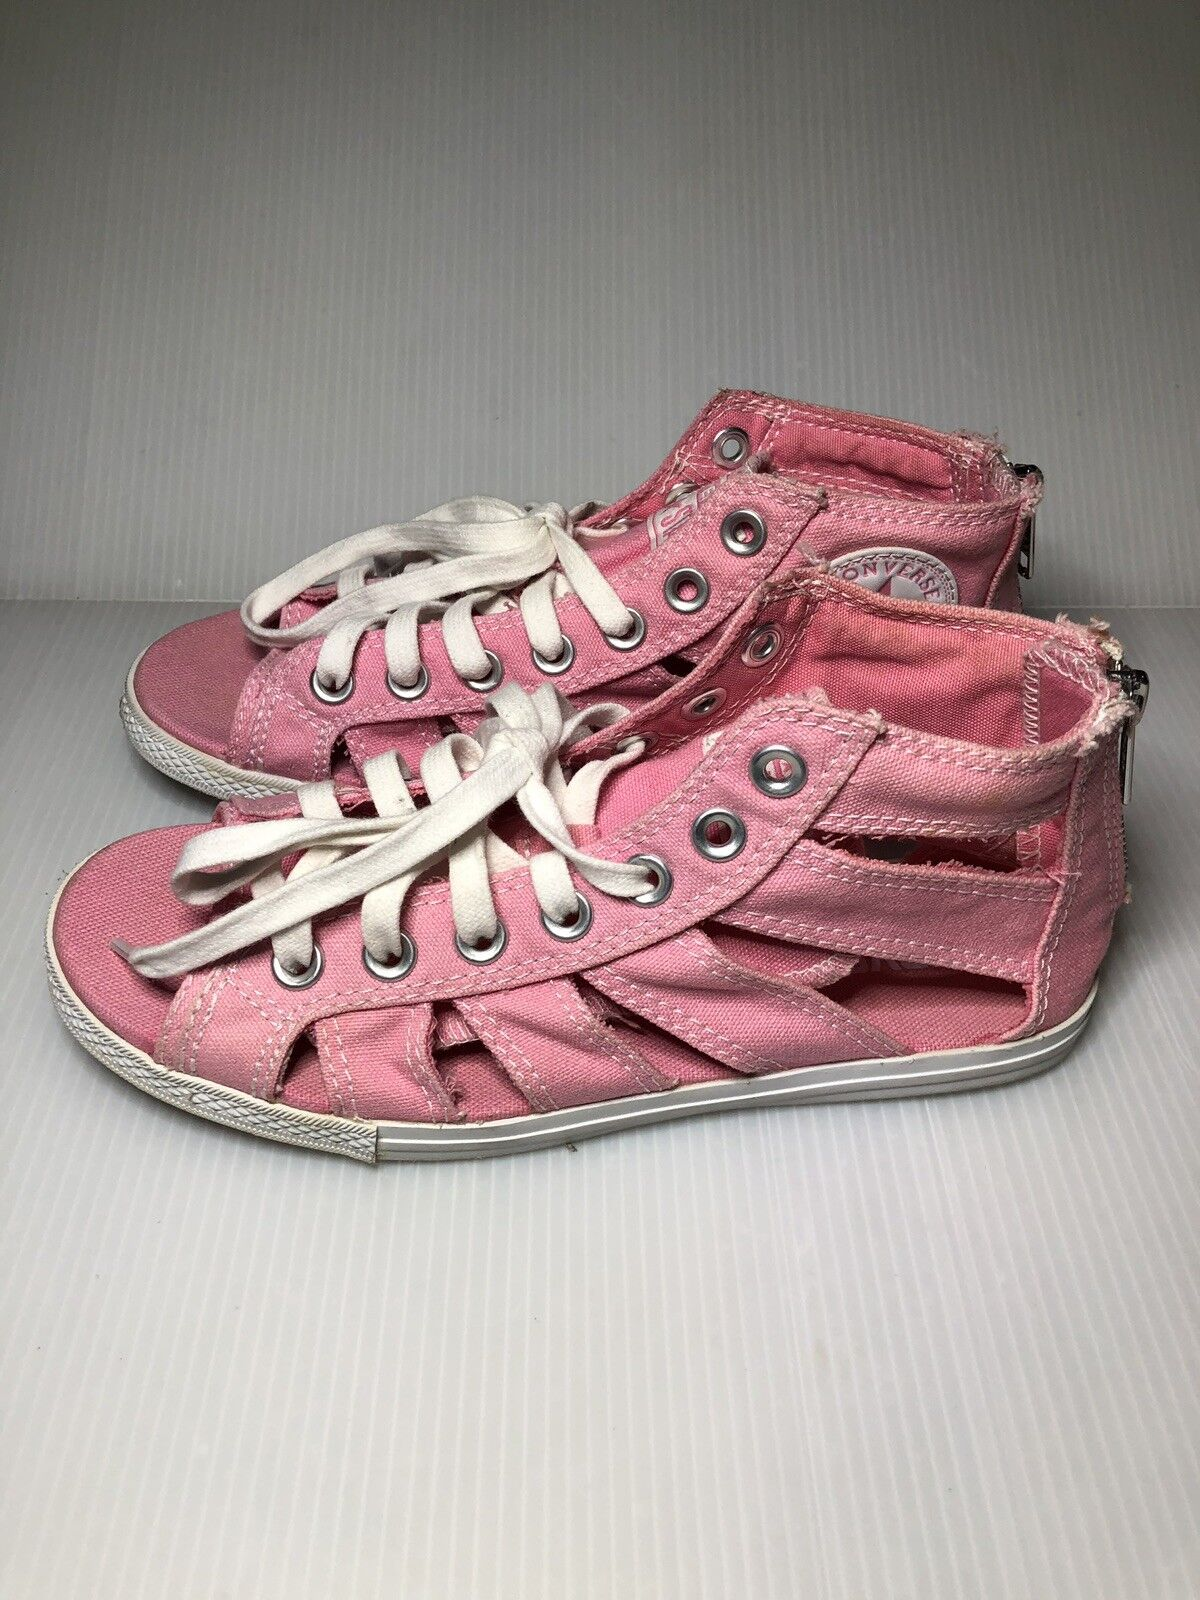 CONVERSE Pink Pink Pink Gladiators All Star Cut Away Open Toe Sandals Chuck Taylor a14dce